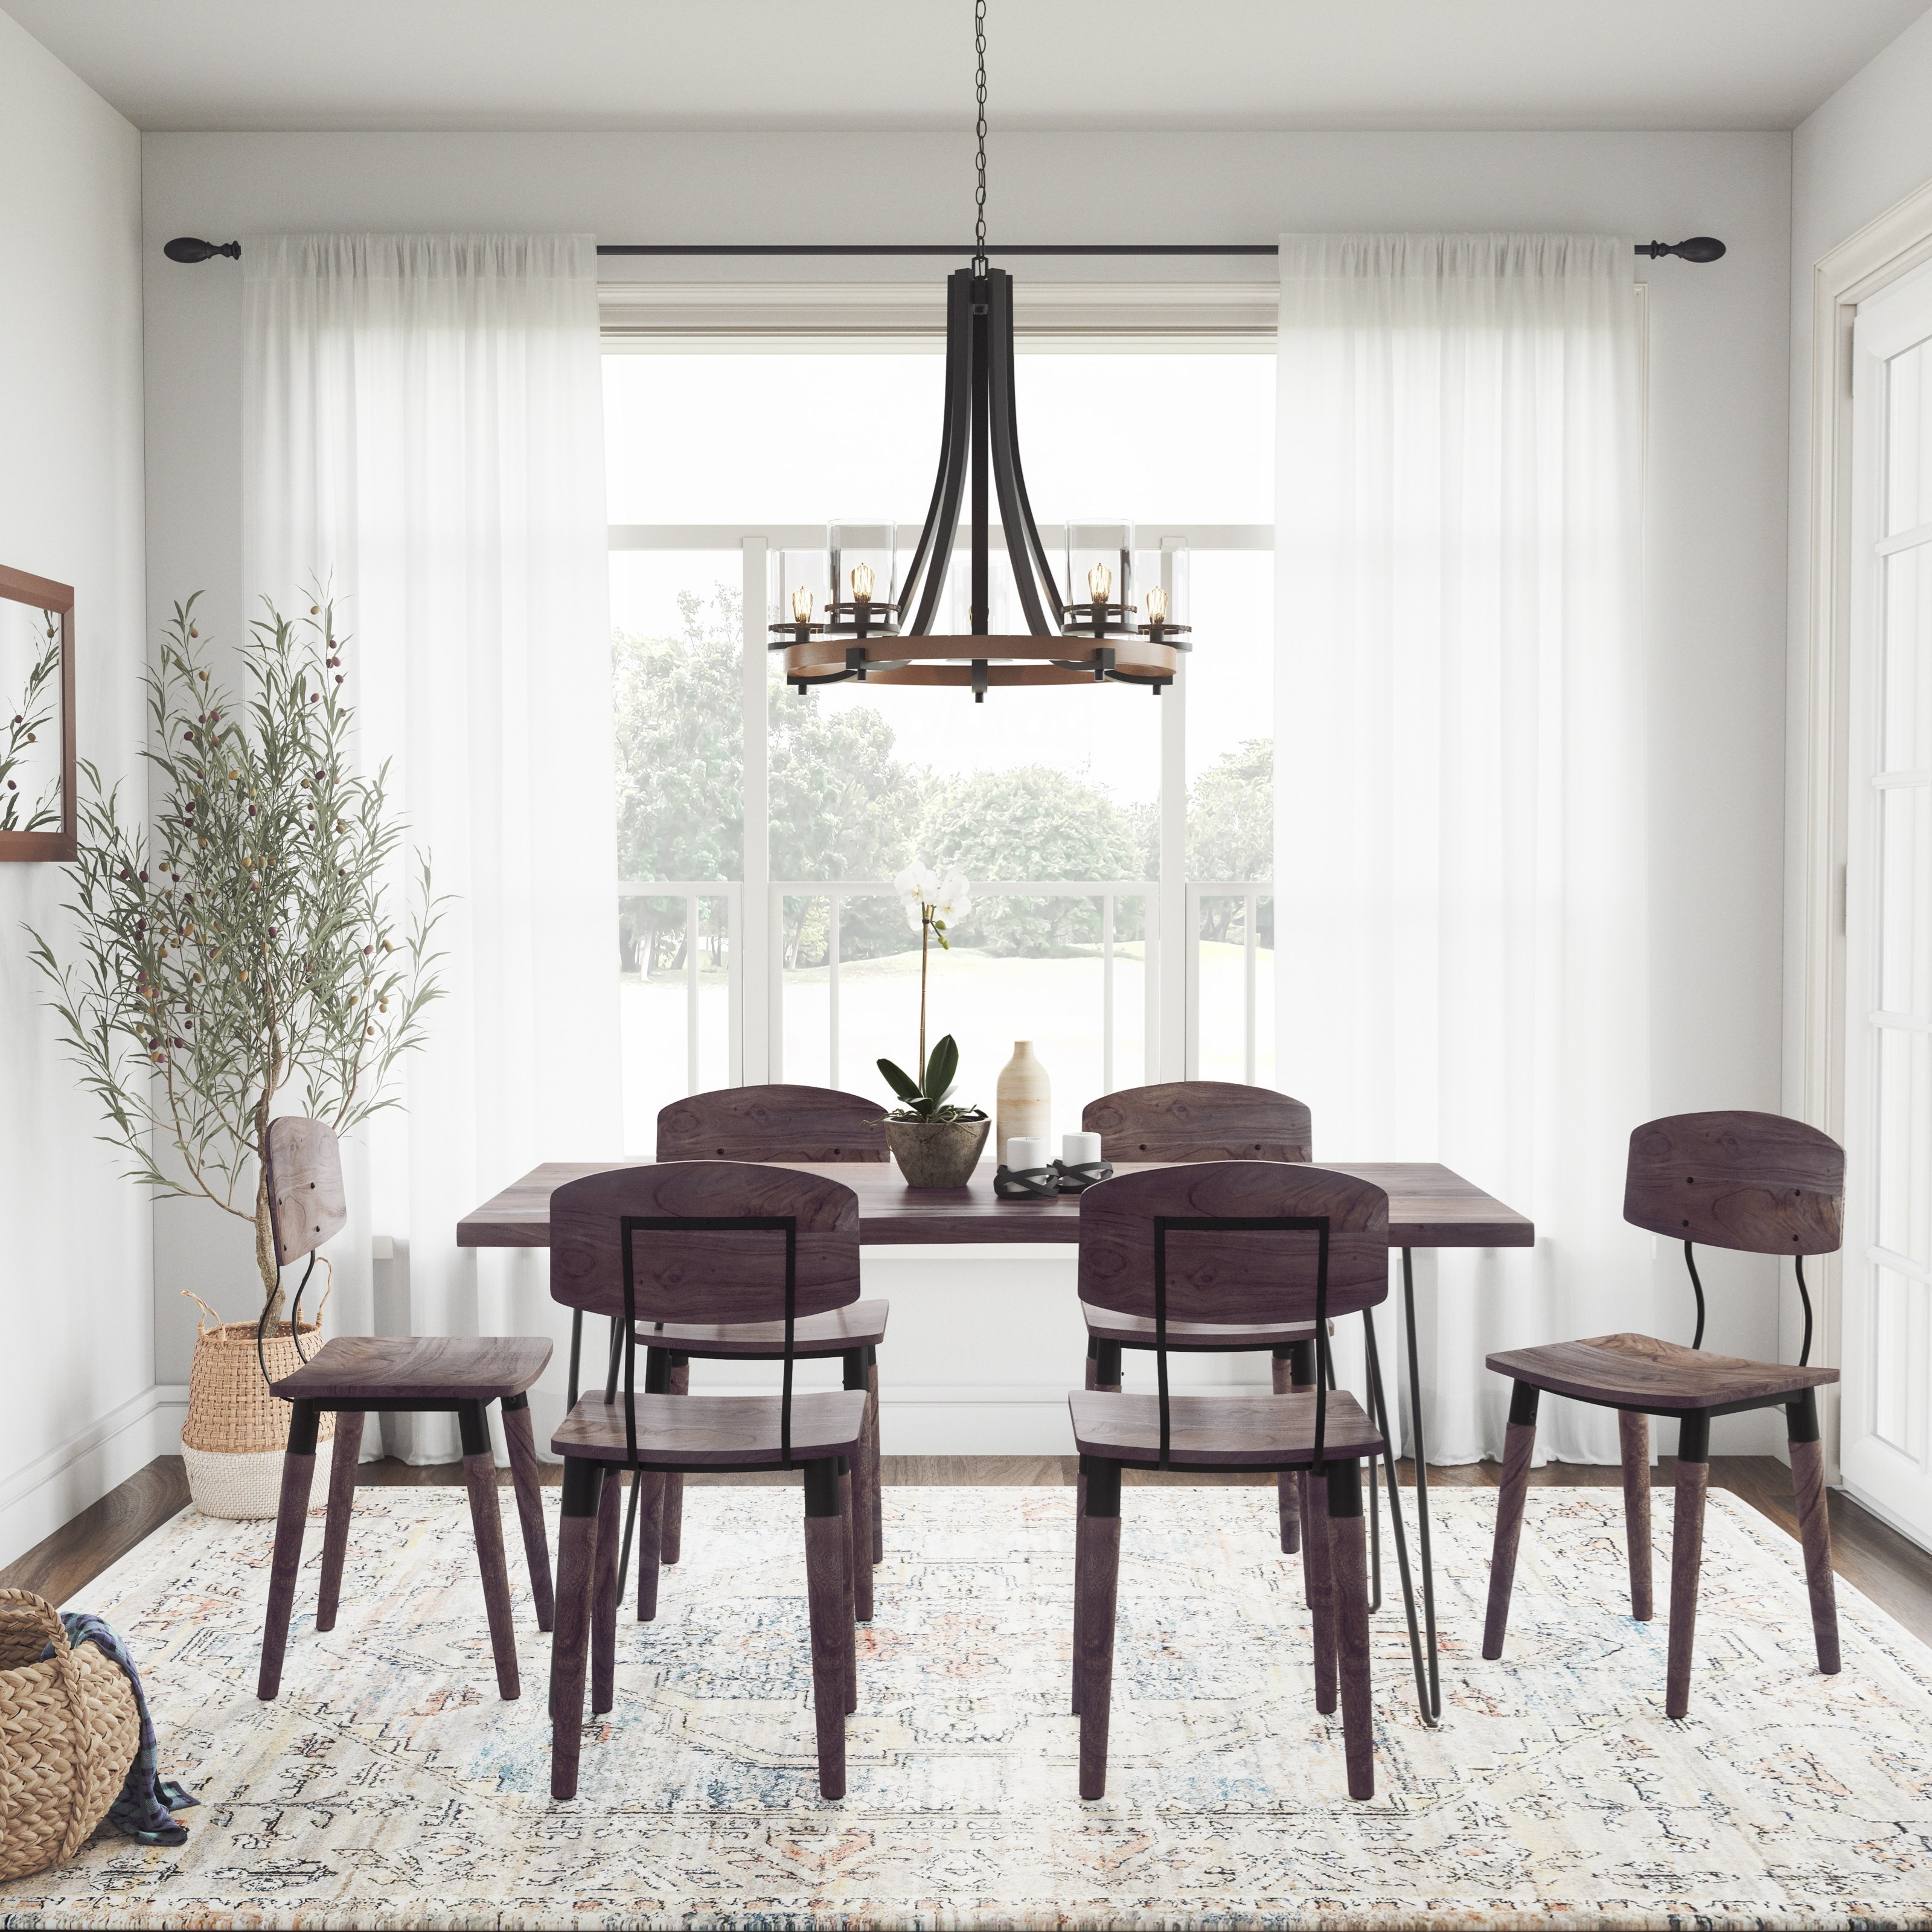 Nature's Edge 7-Piece Table and Chair Set by Jofran at Jofran